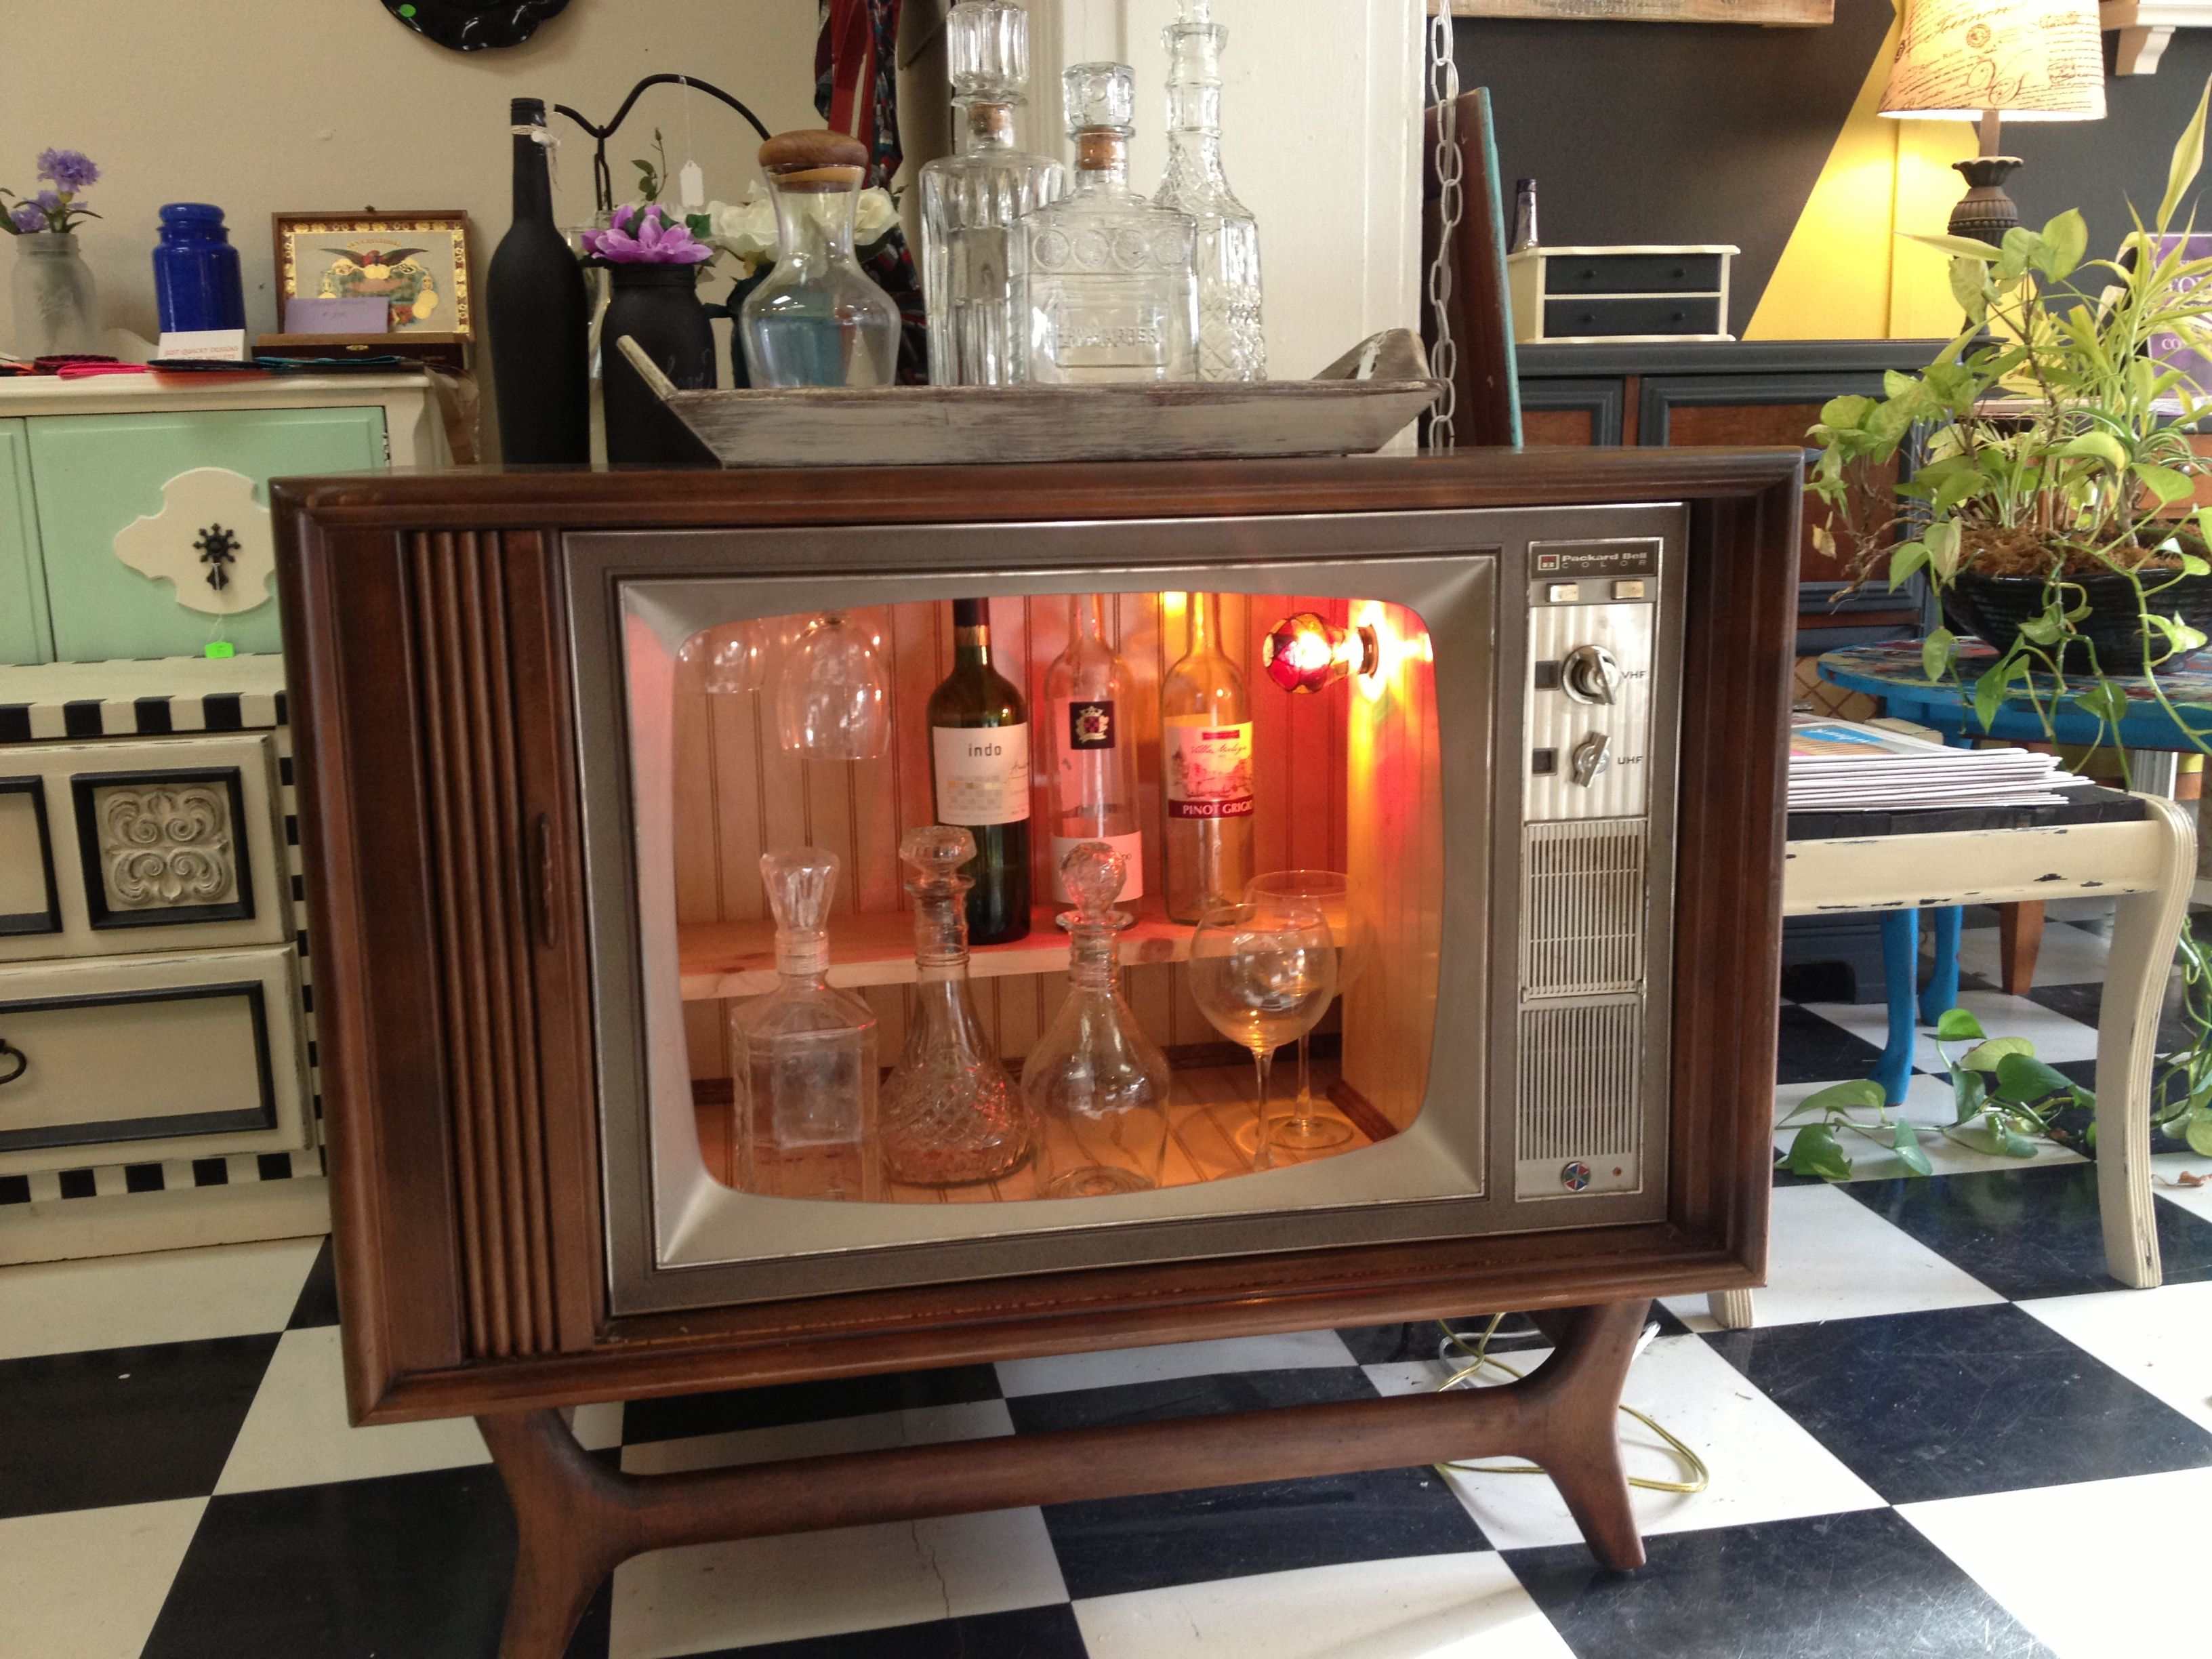 Repurposed Upcycled Television Console Into A Liquor